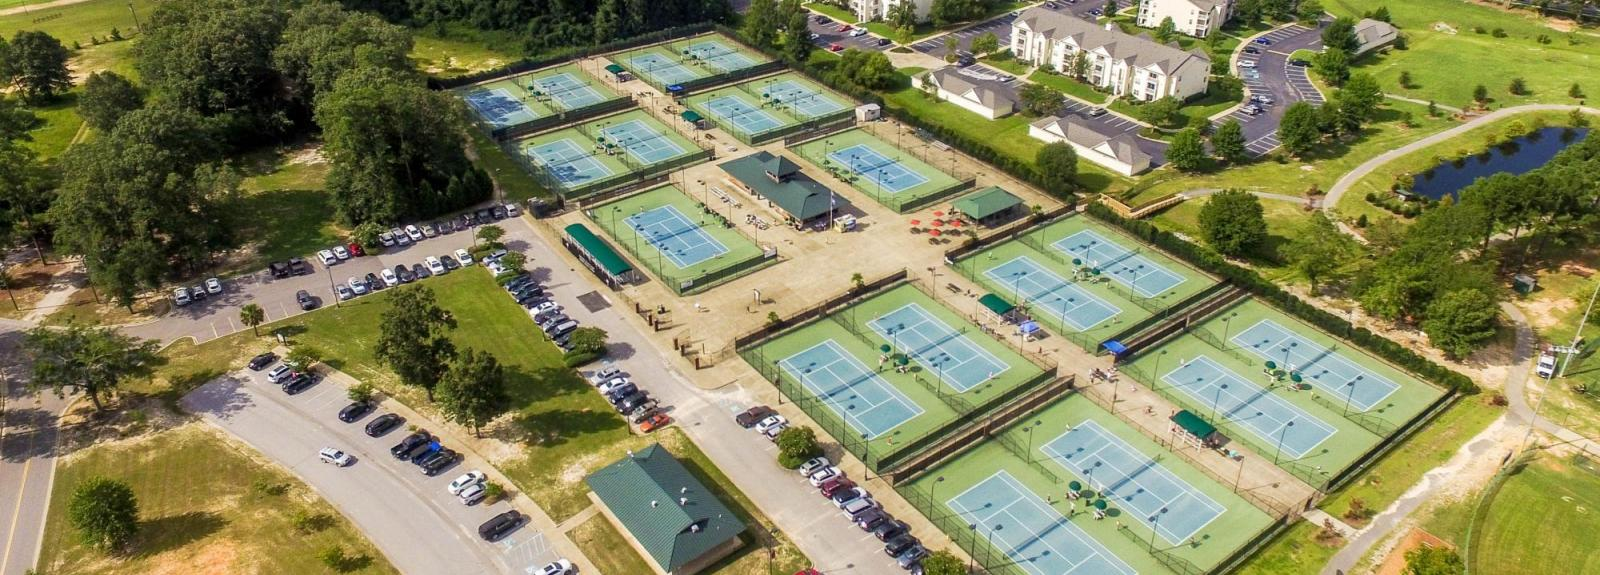 Aerial View of Palmetto Tennis Center and Neighboring Apartments